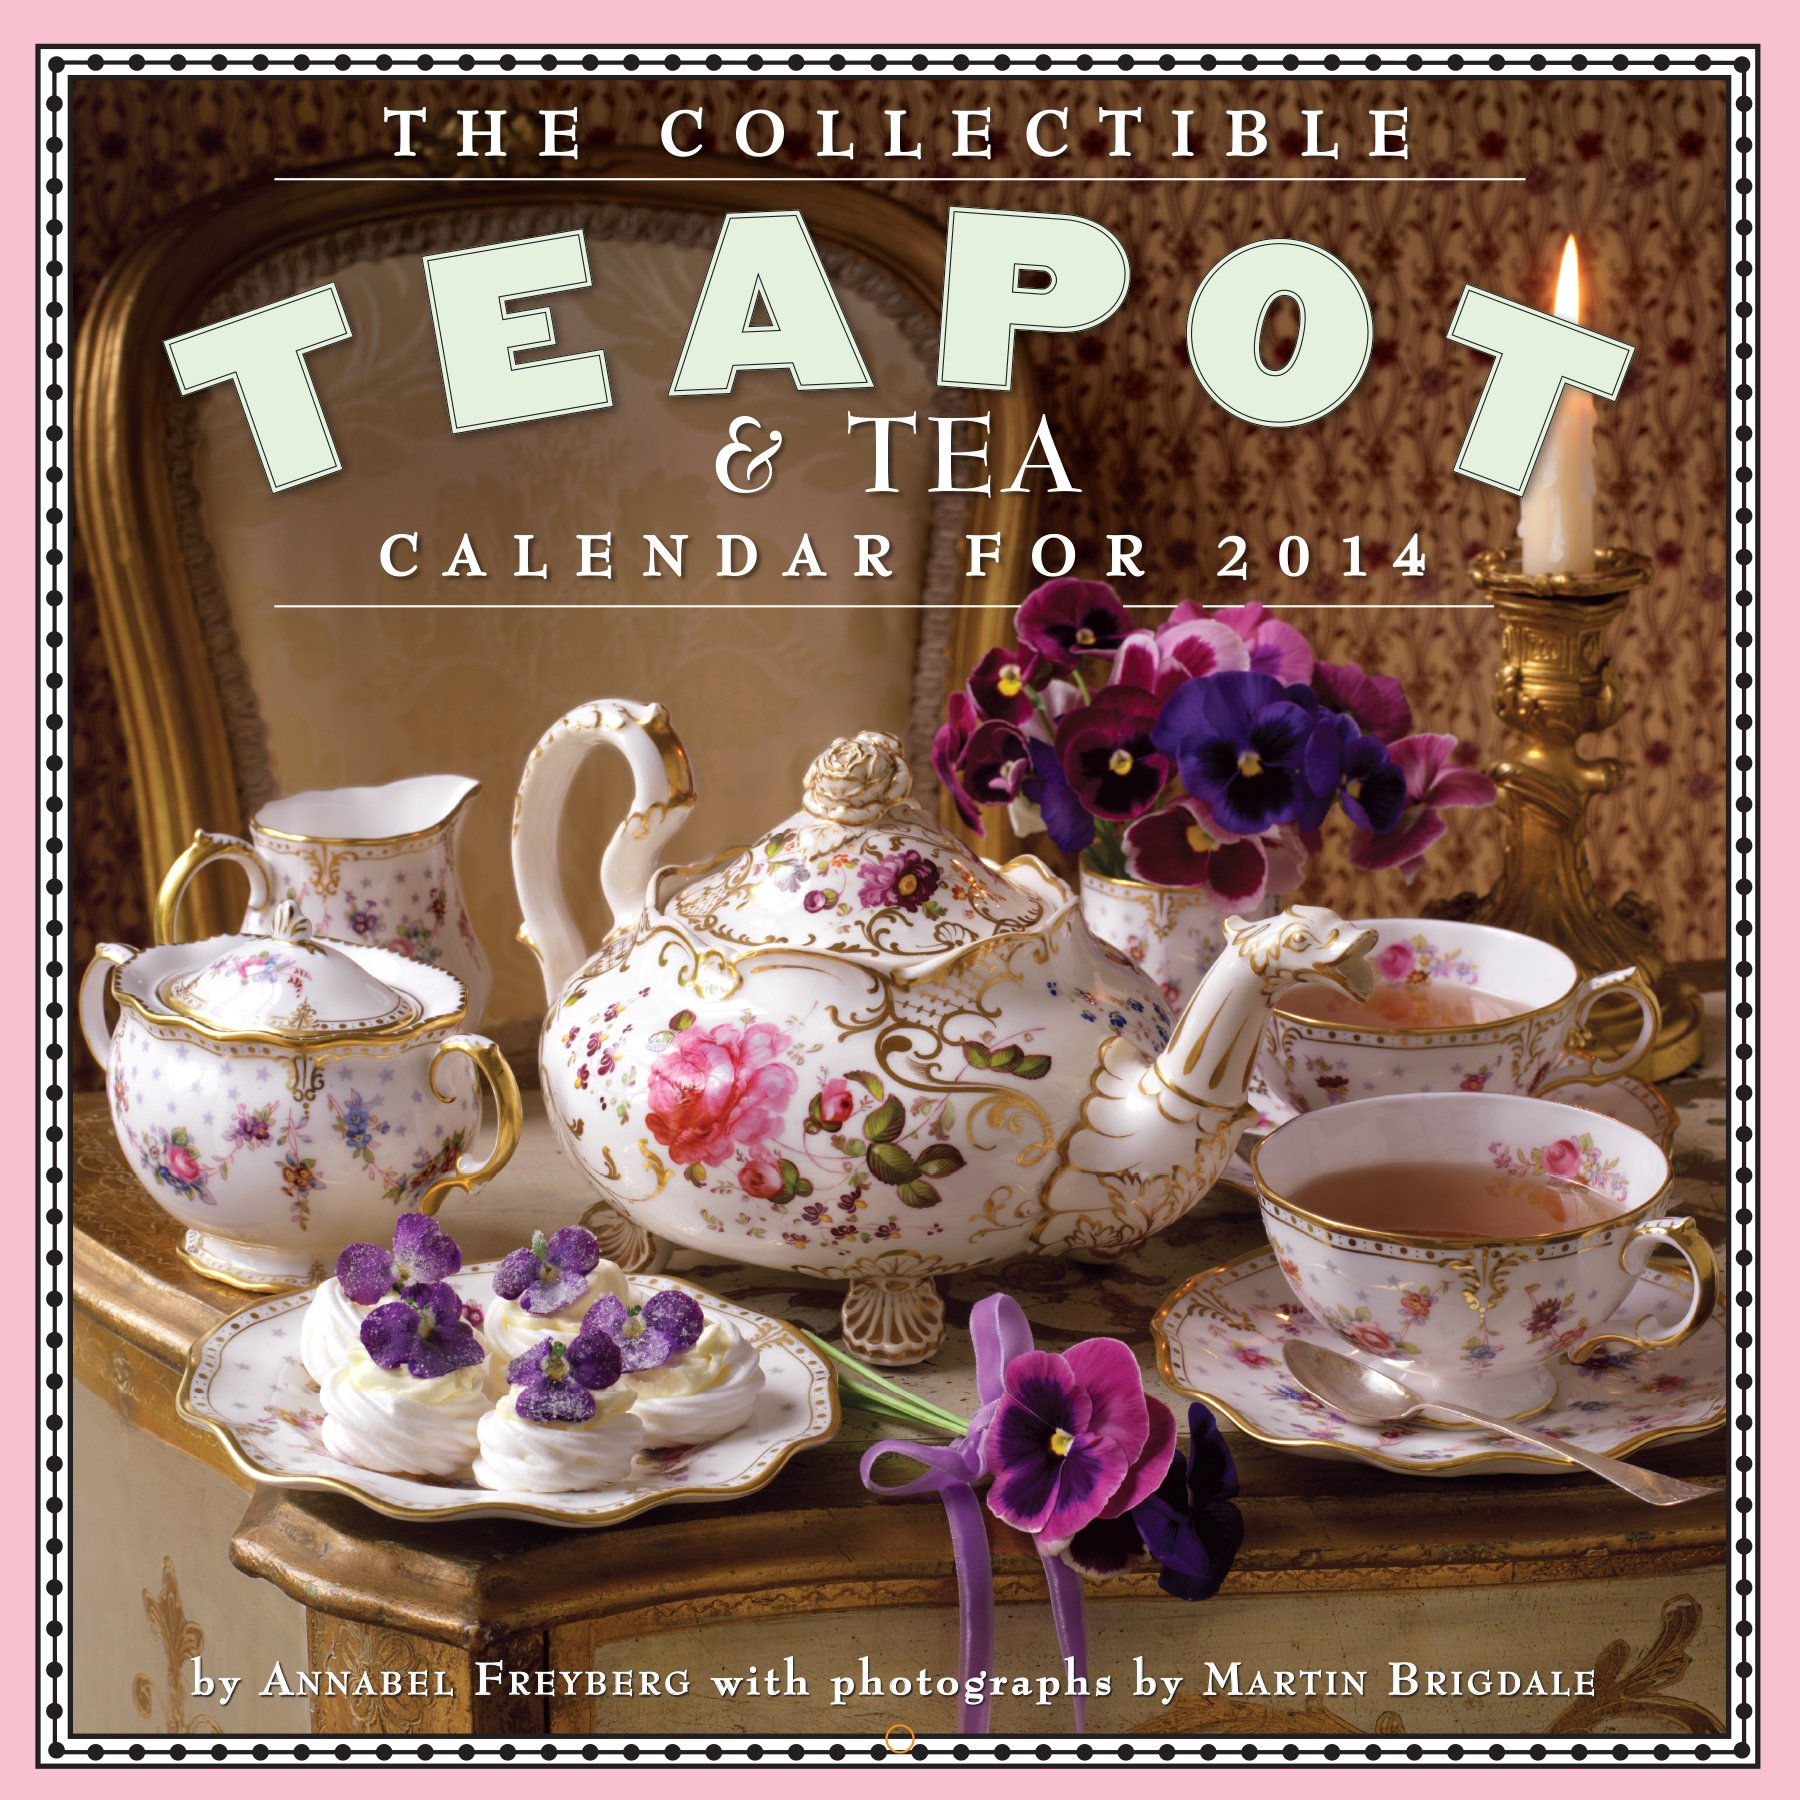 Download The Collectible Teapot & Tea Calendar 2014 PDF